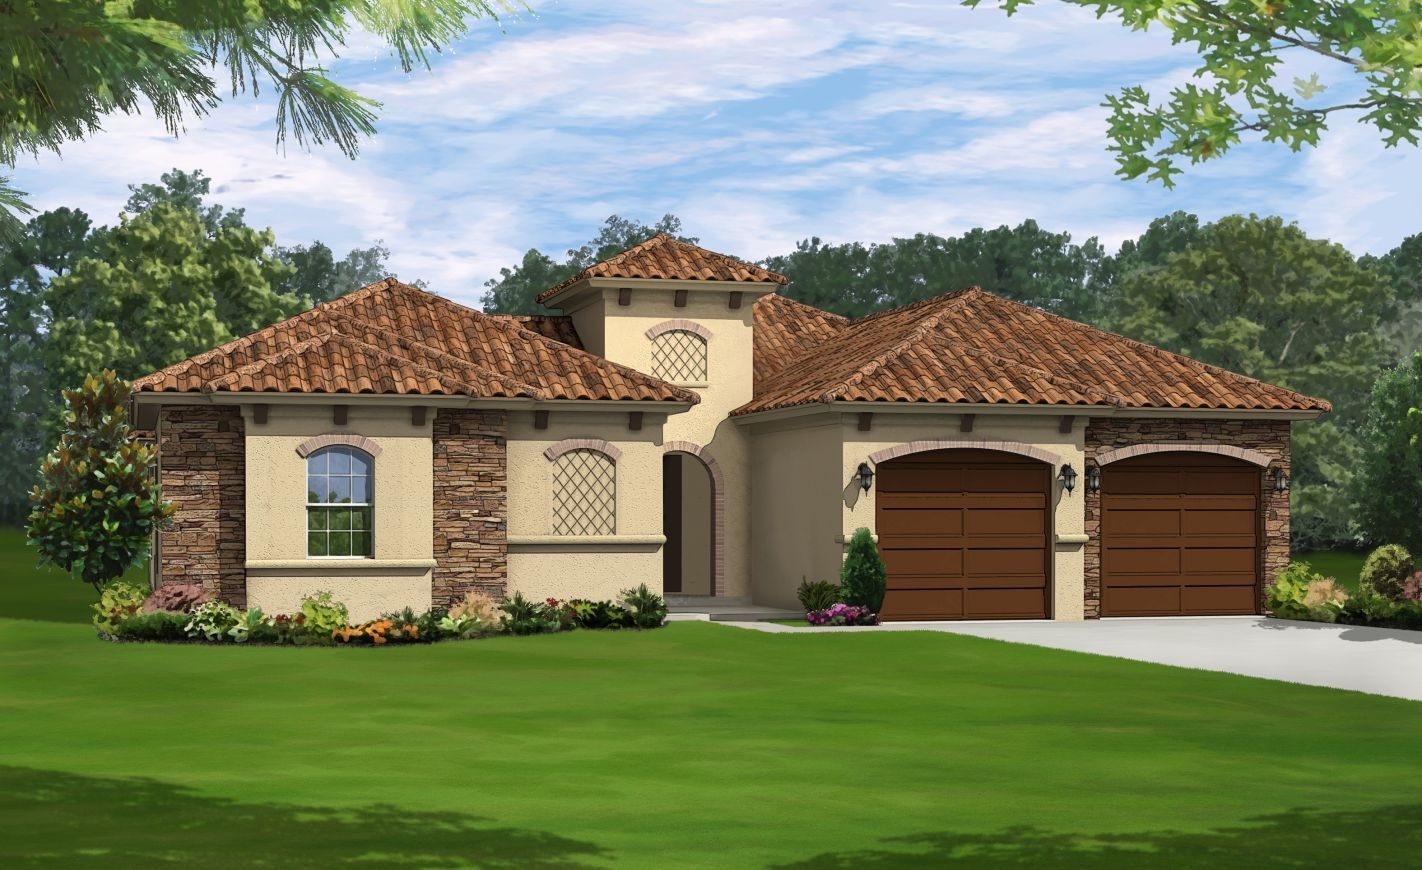 Single Family for Sale at Avilla - Brazilia 2850 Swoop Circle Kissimmee, Florida 34741 United States